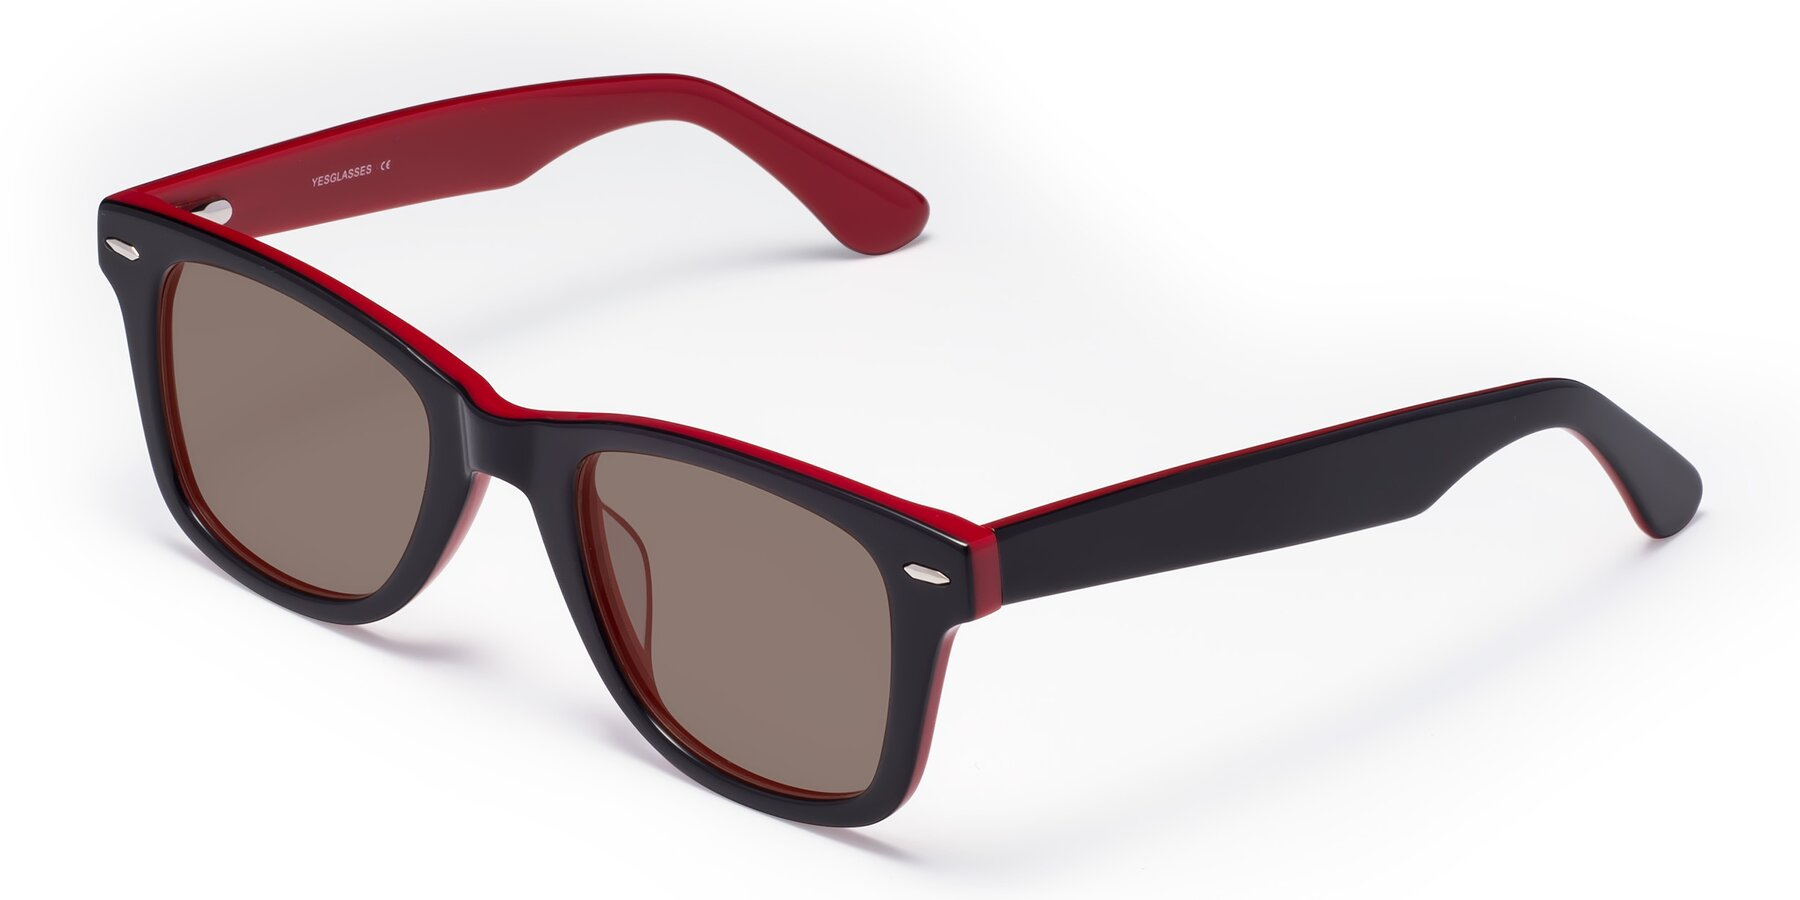 Angle of Rocky in Black-Wine with Medium Brown Tinted Lenses